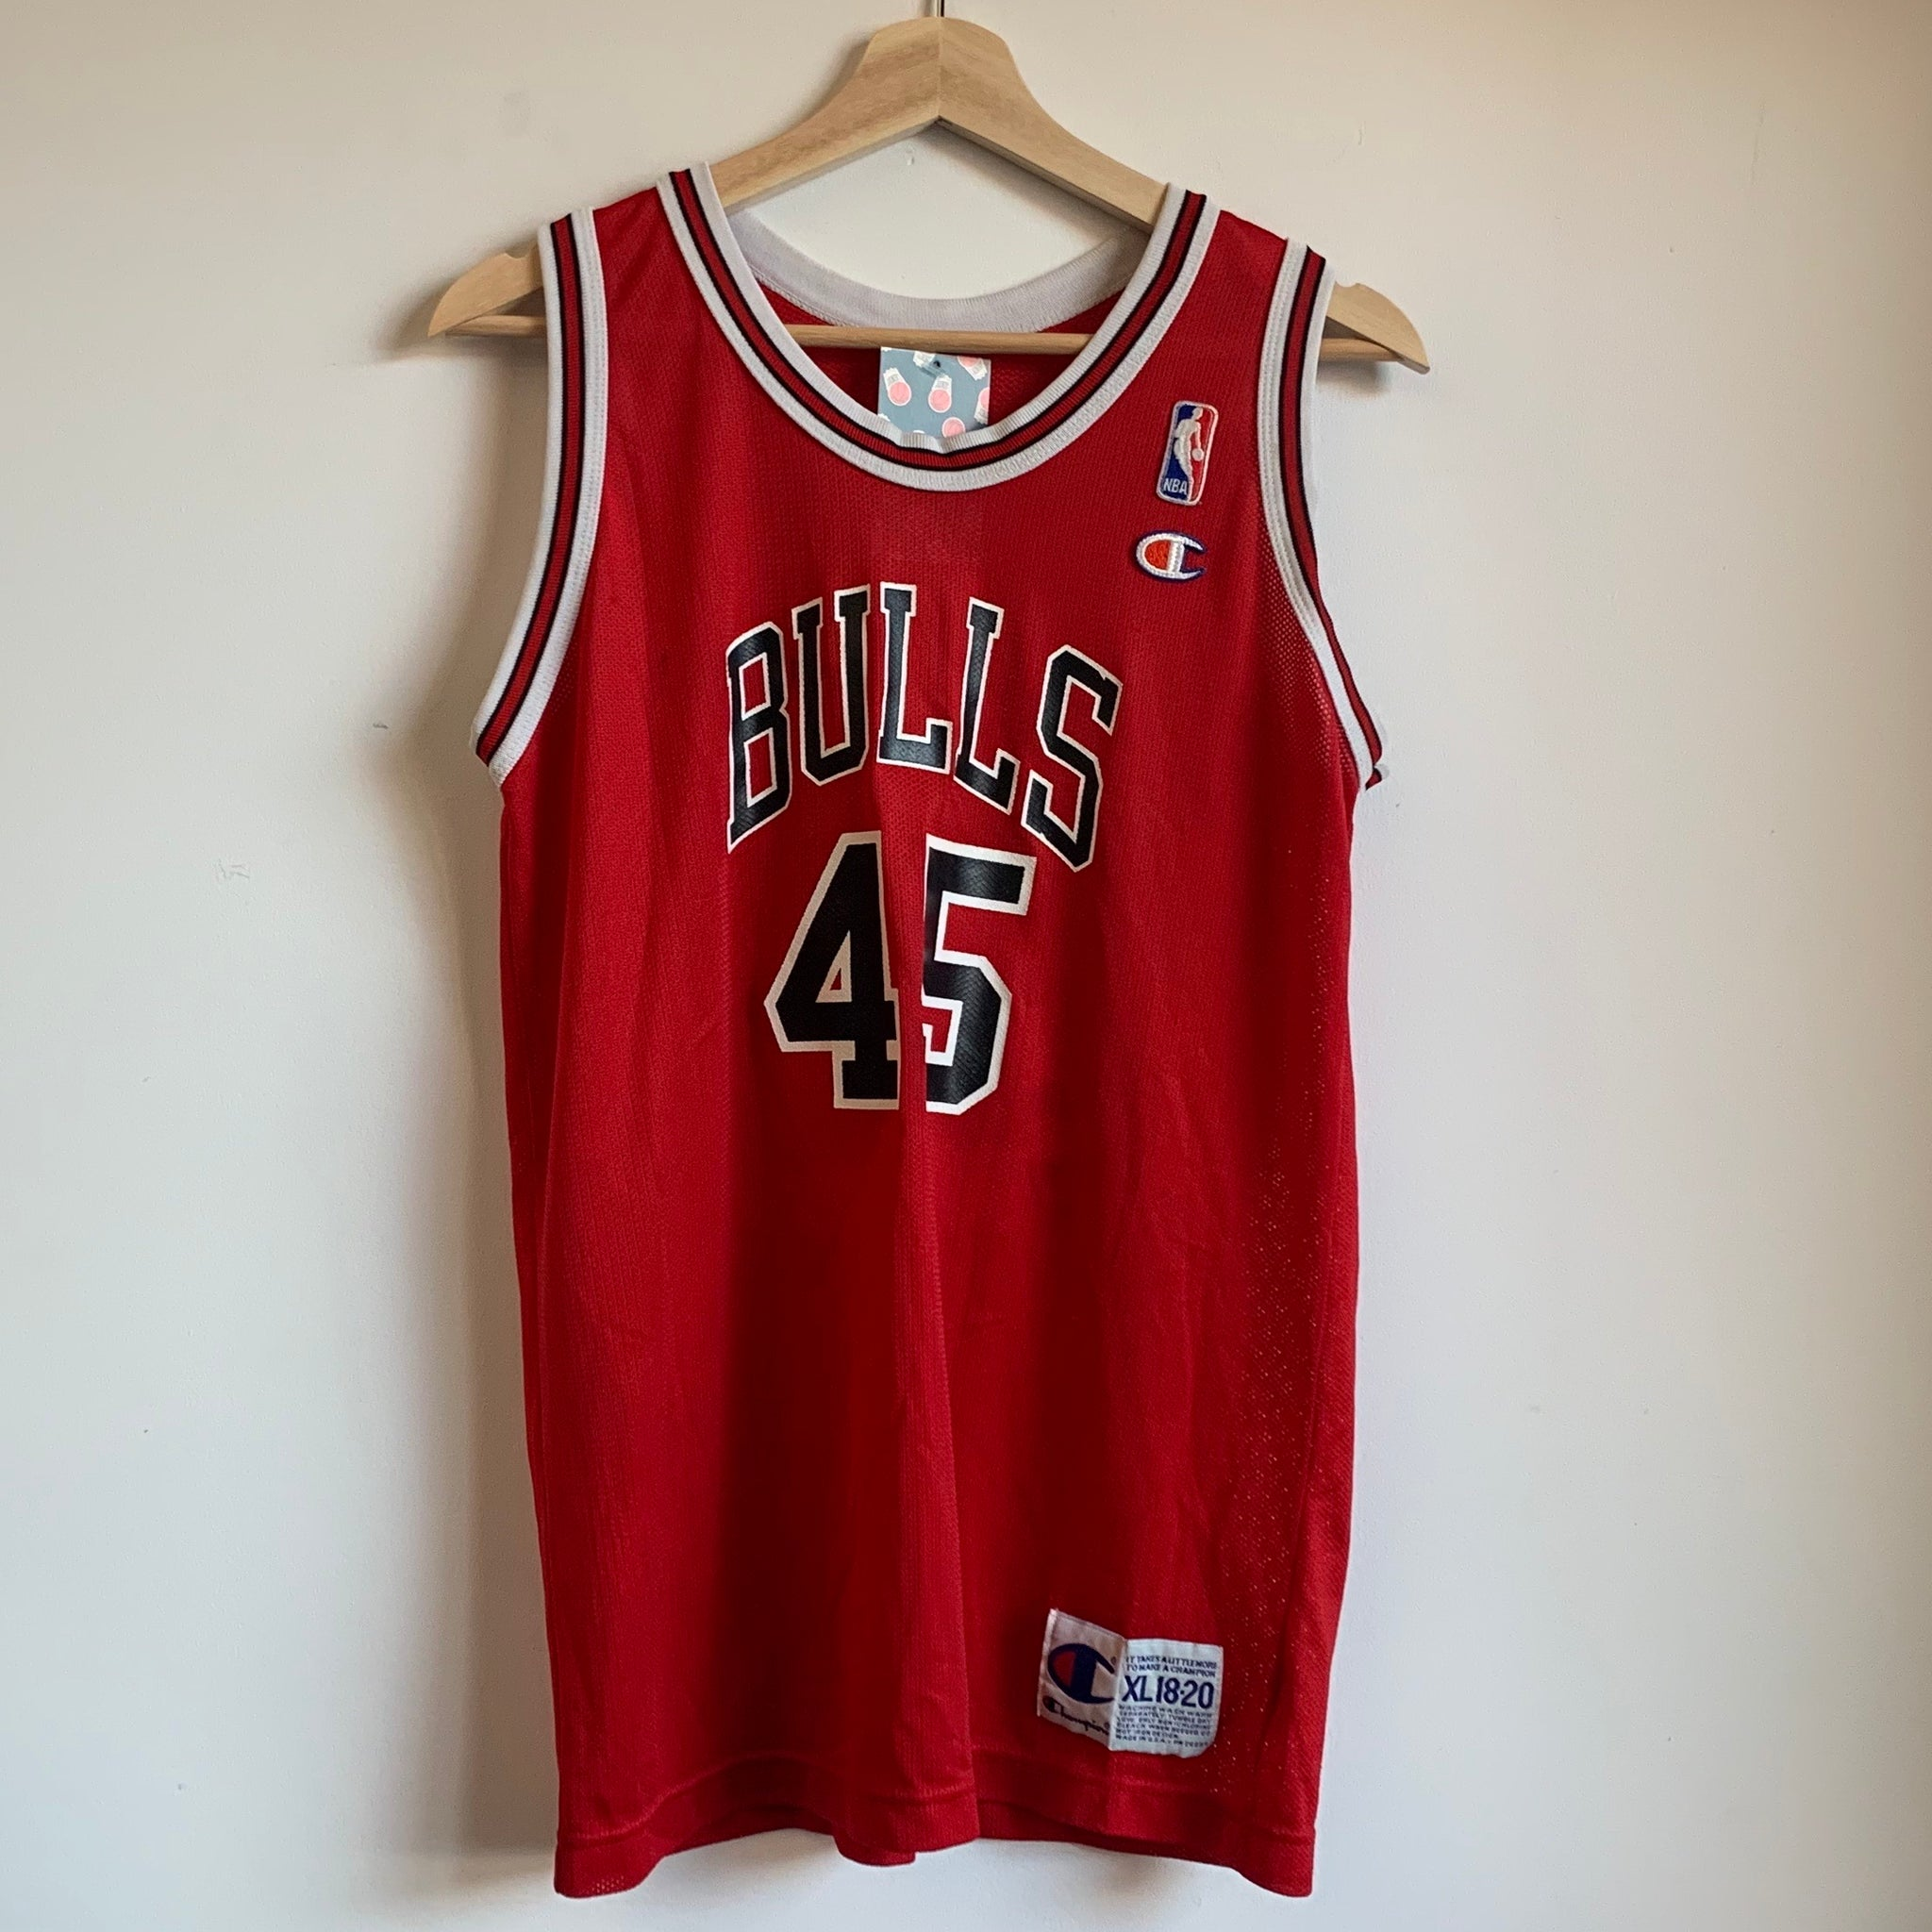 Champion Michael Jordan Chicago Bulls Youth Basketball Jersey